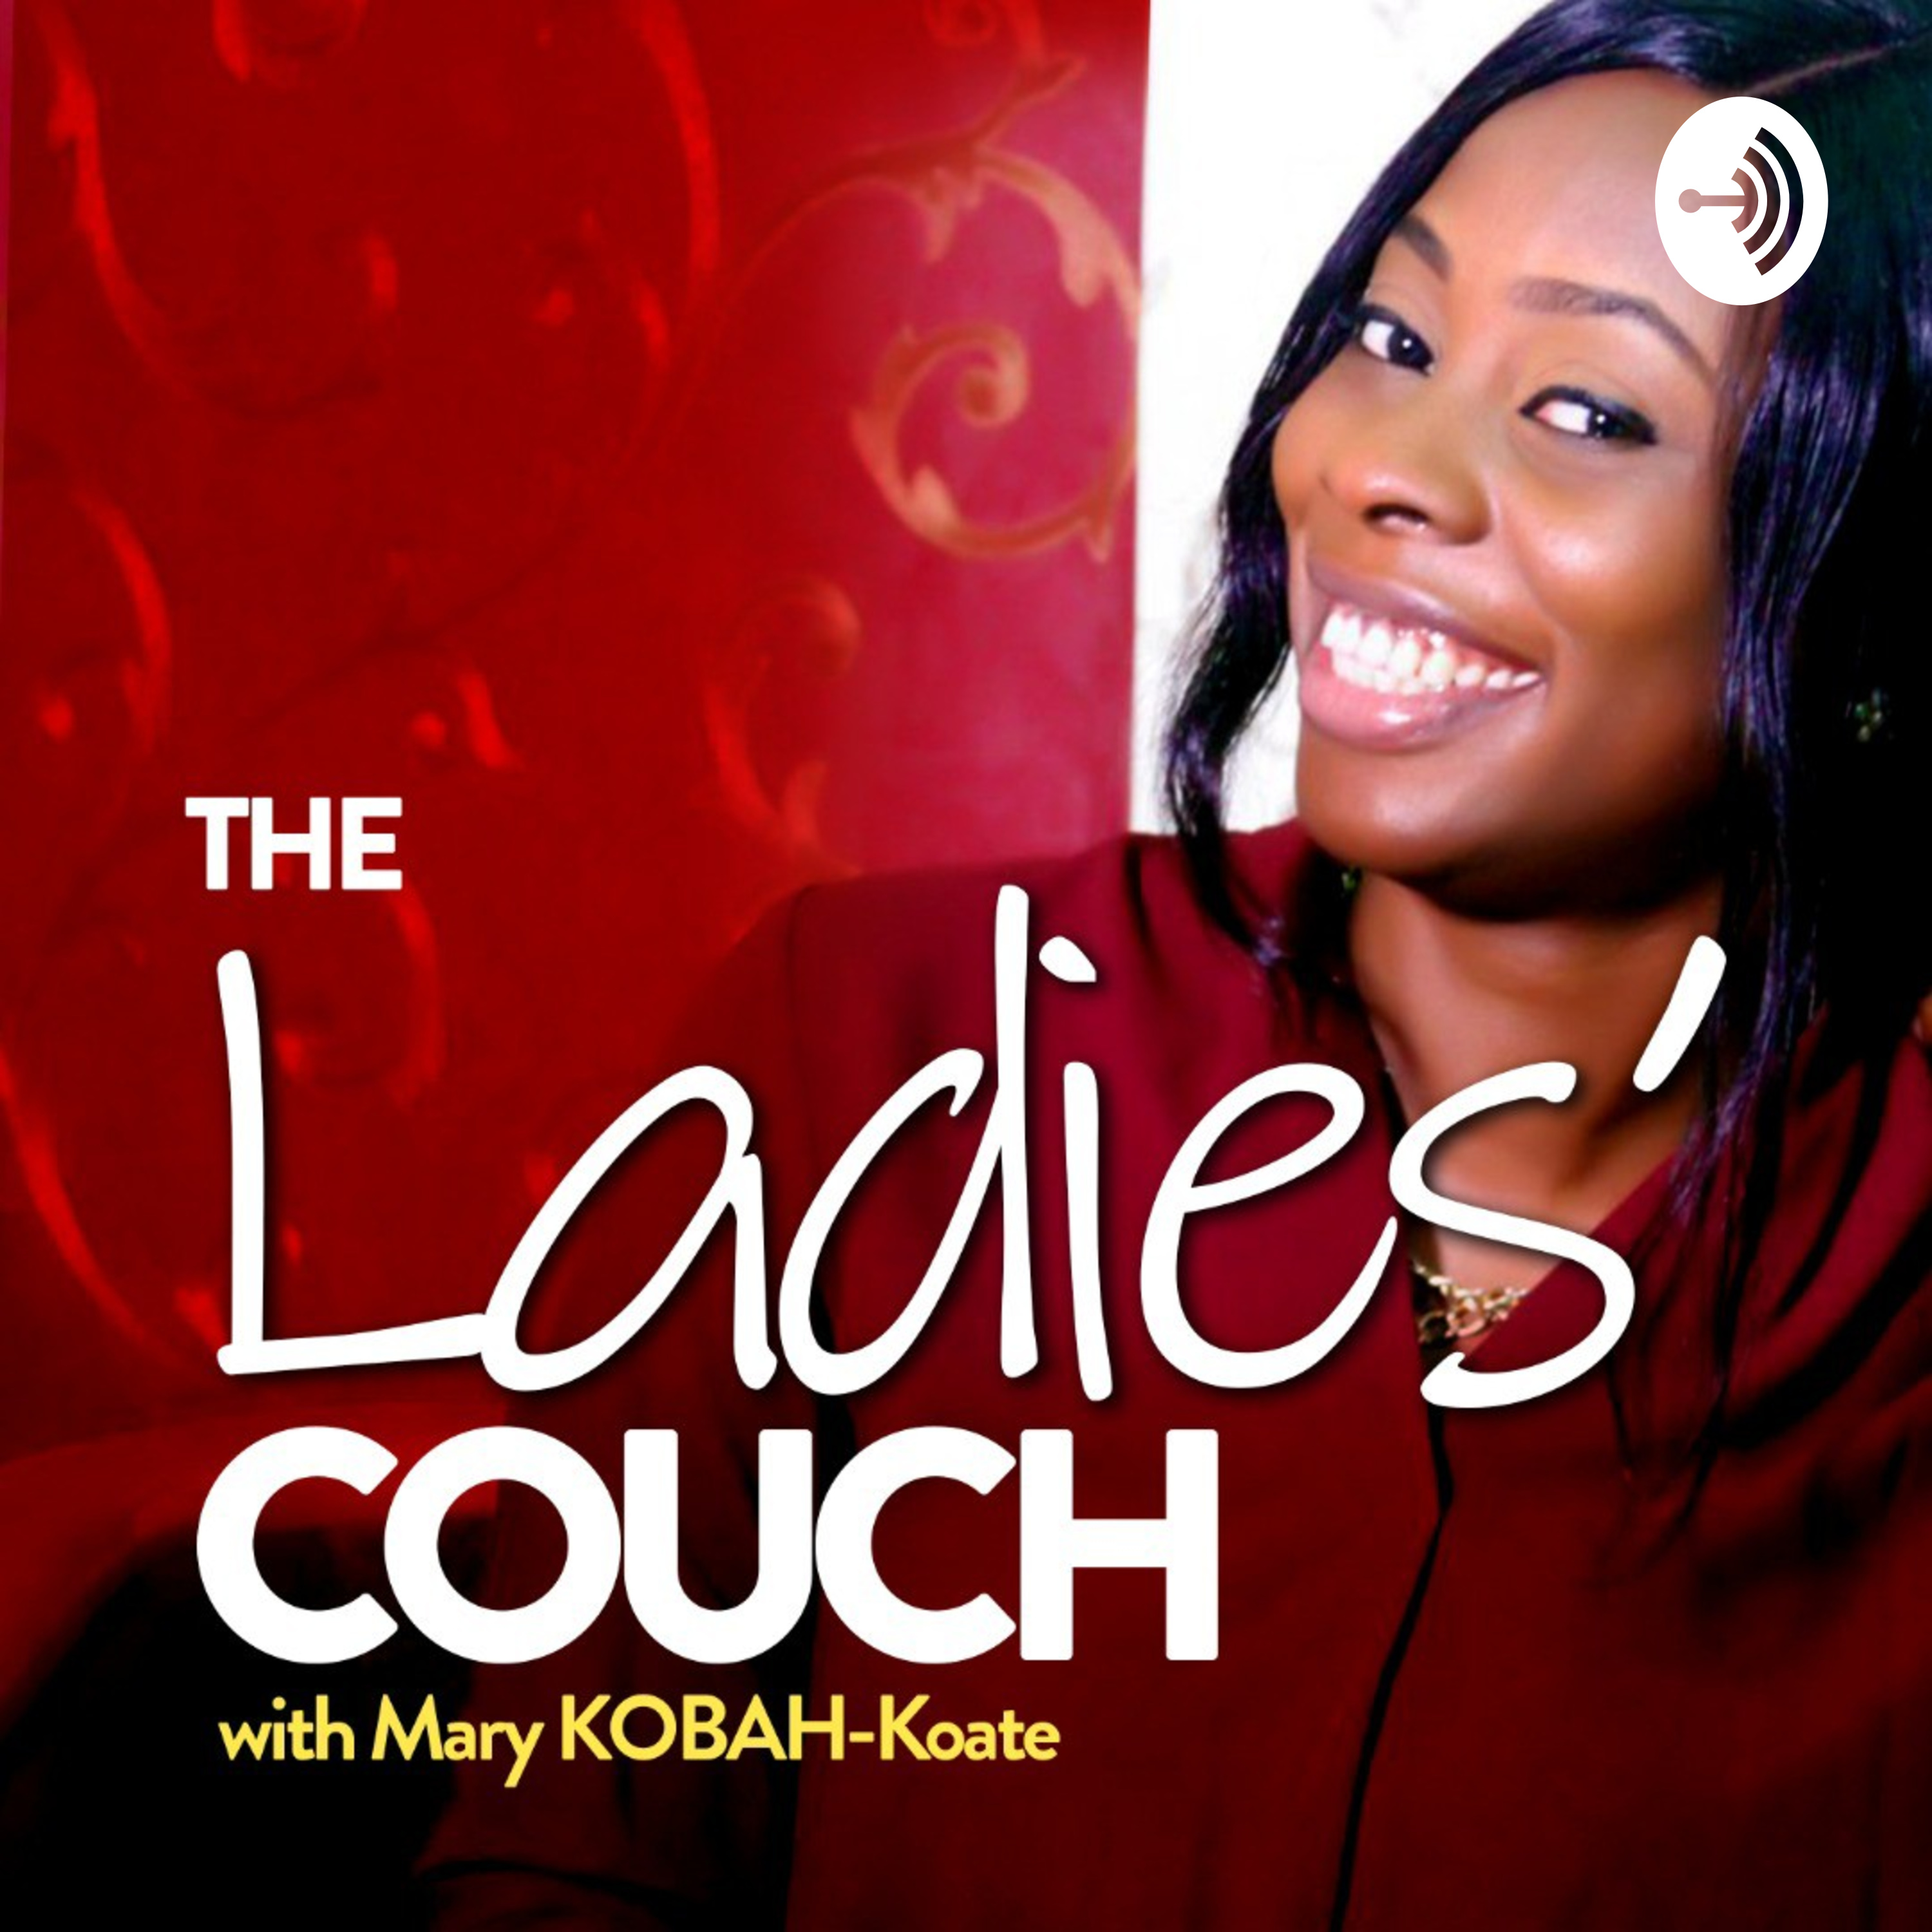 The Ladies' Couch with Mary KOBAH-Koate podcast